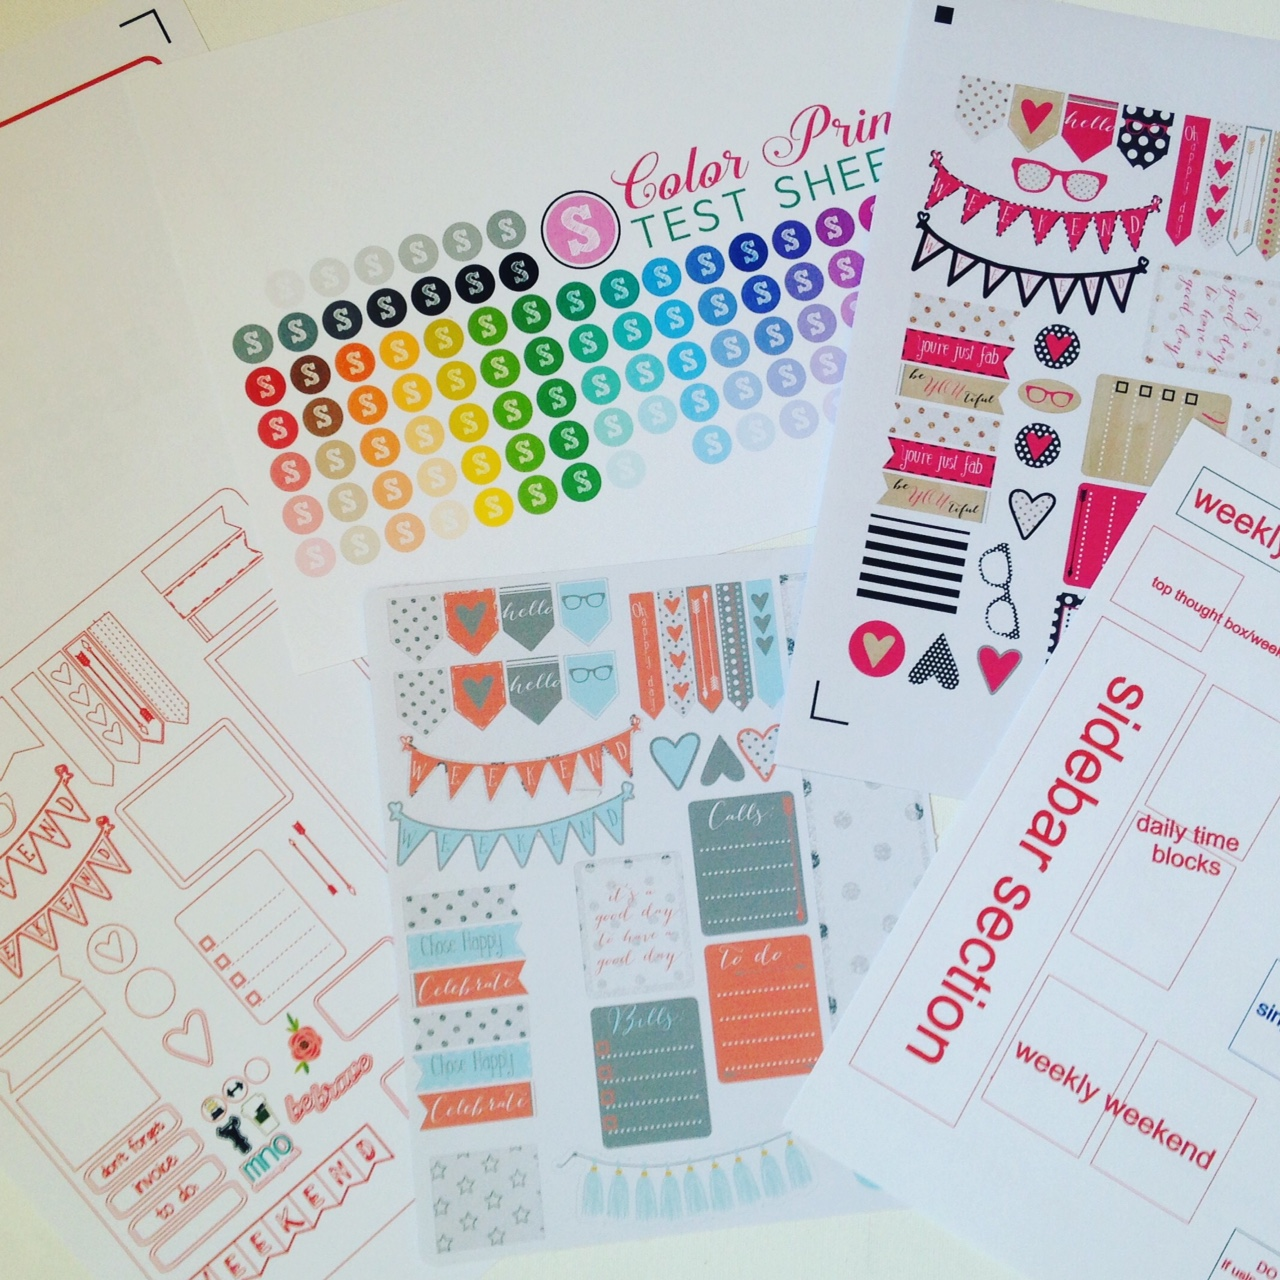 It is a photo of Silhouette Printable Sticker Paper throughout self adhesive